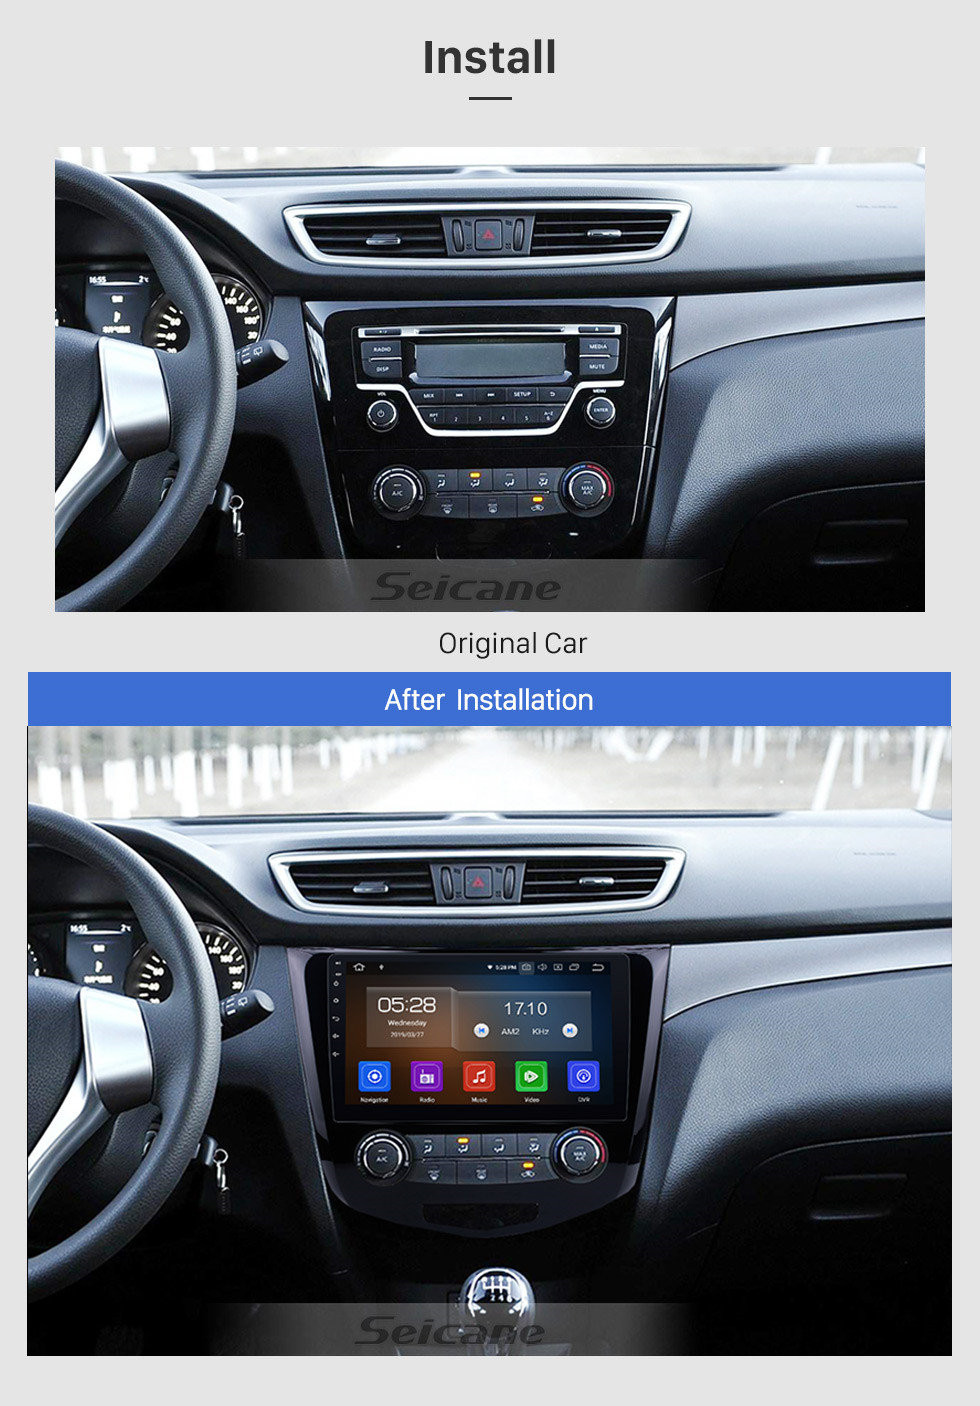 Seicane 10.1 inch HD Touchscreen GPS Radio Navigation System Android 10.0 For 2014 2015 2016 Nissan Qashqai Support Bluetooth Music ODB2 DVR Mirror Link TPMS Steering Wheel Control